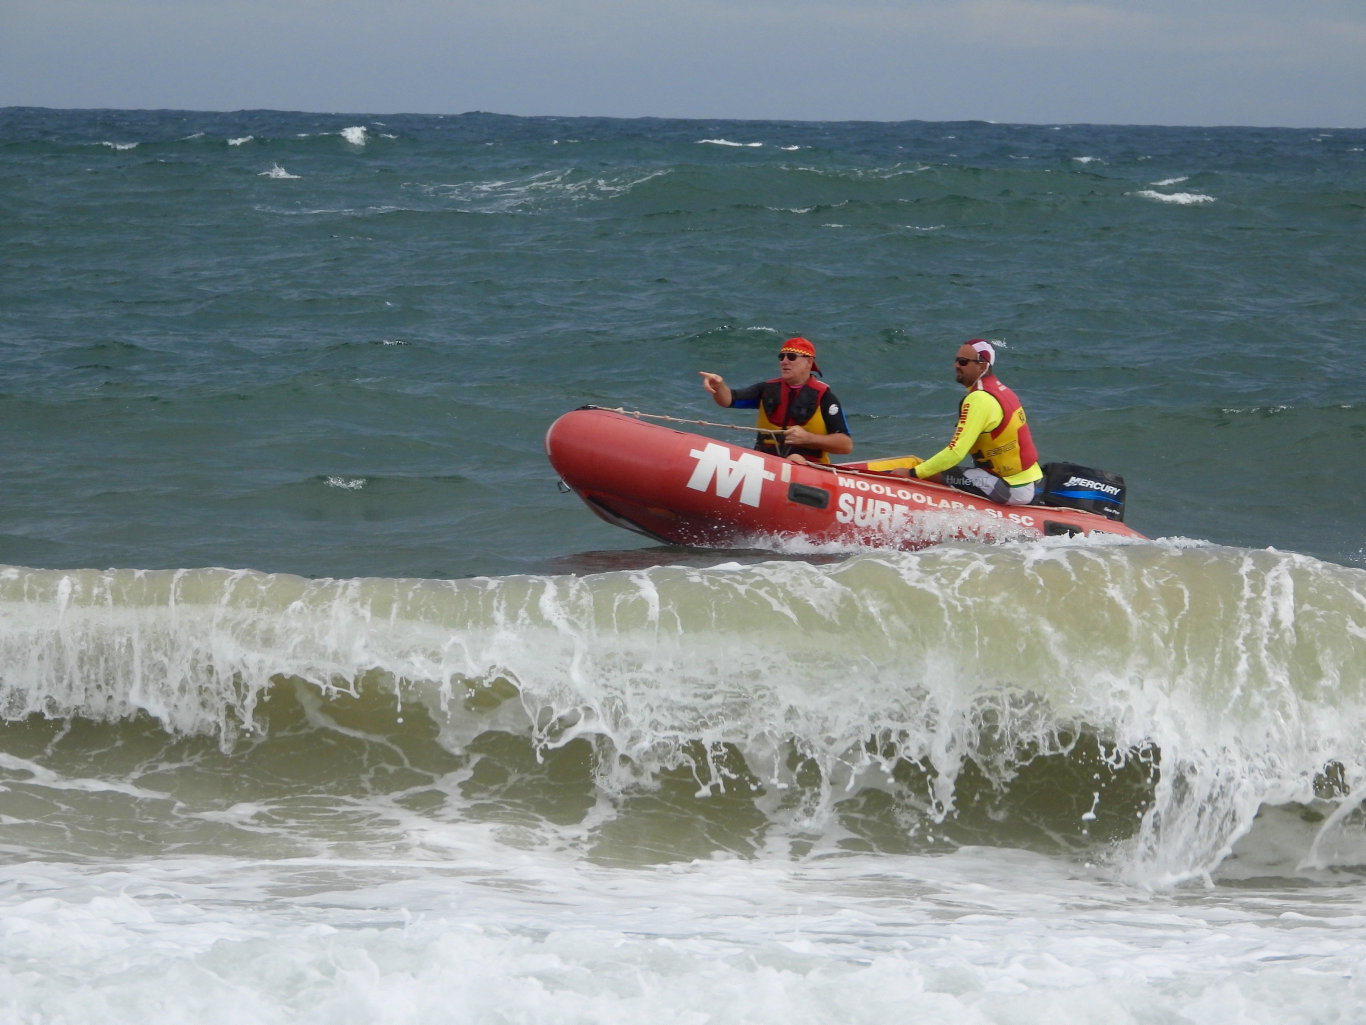 RESCUE DRAMA: Lifesavers in an inshore rescue boat were quickly deployed to the unfolding drama.